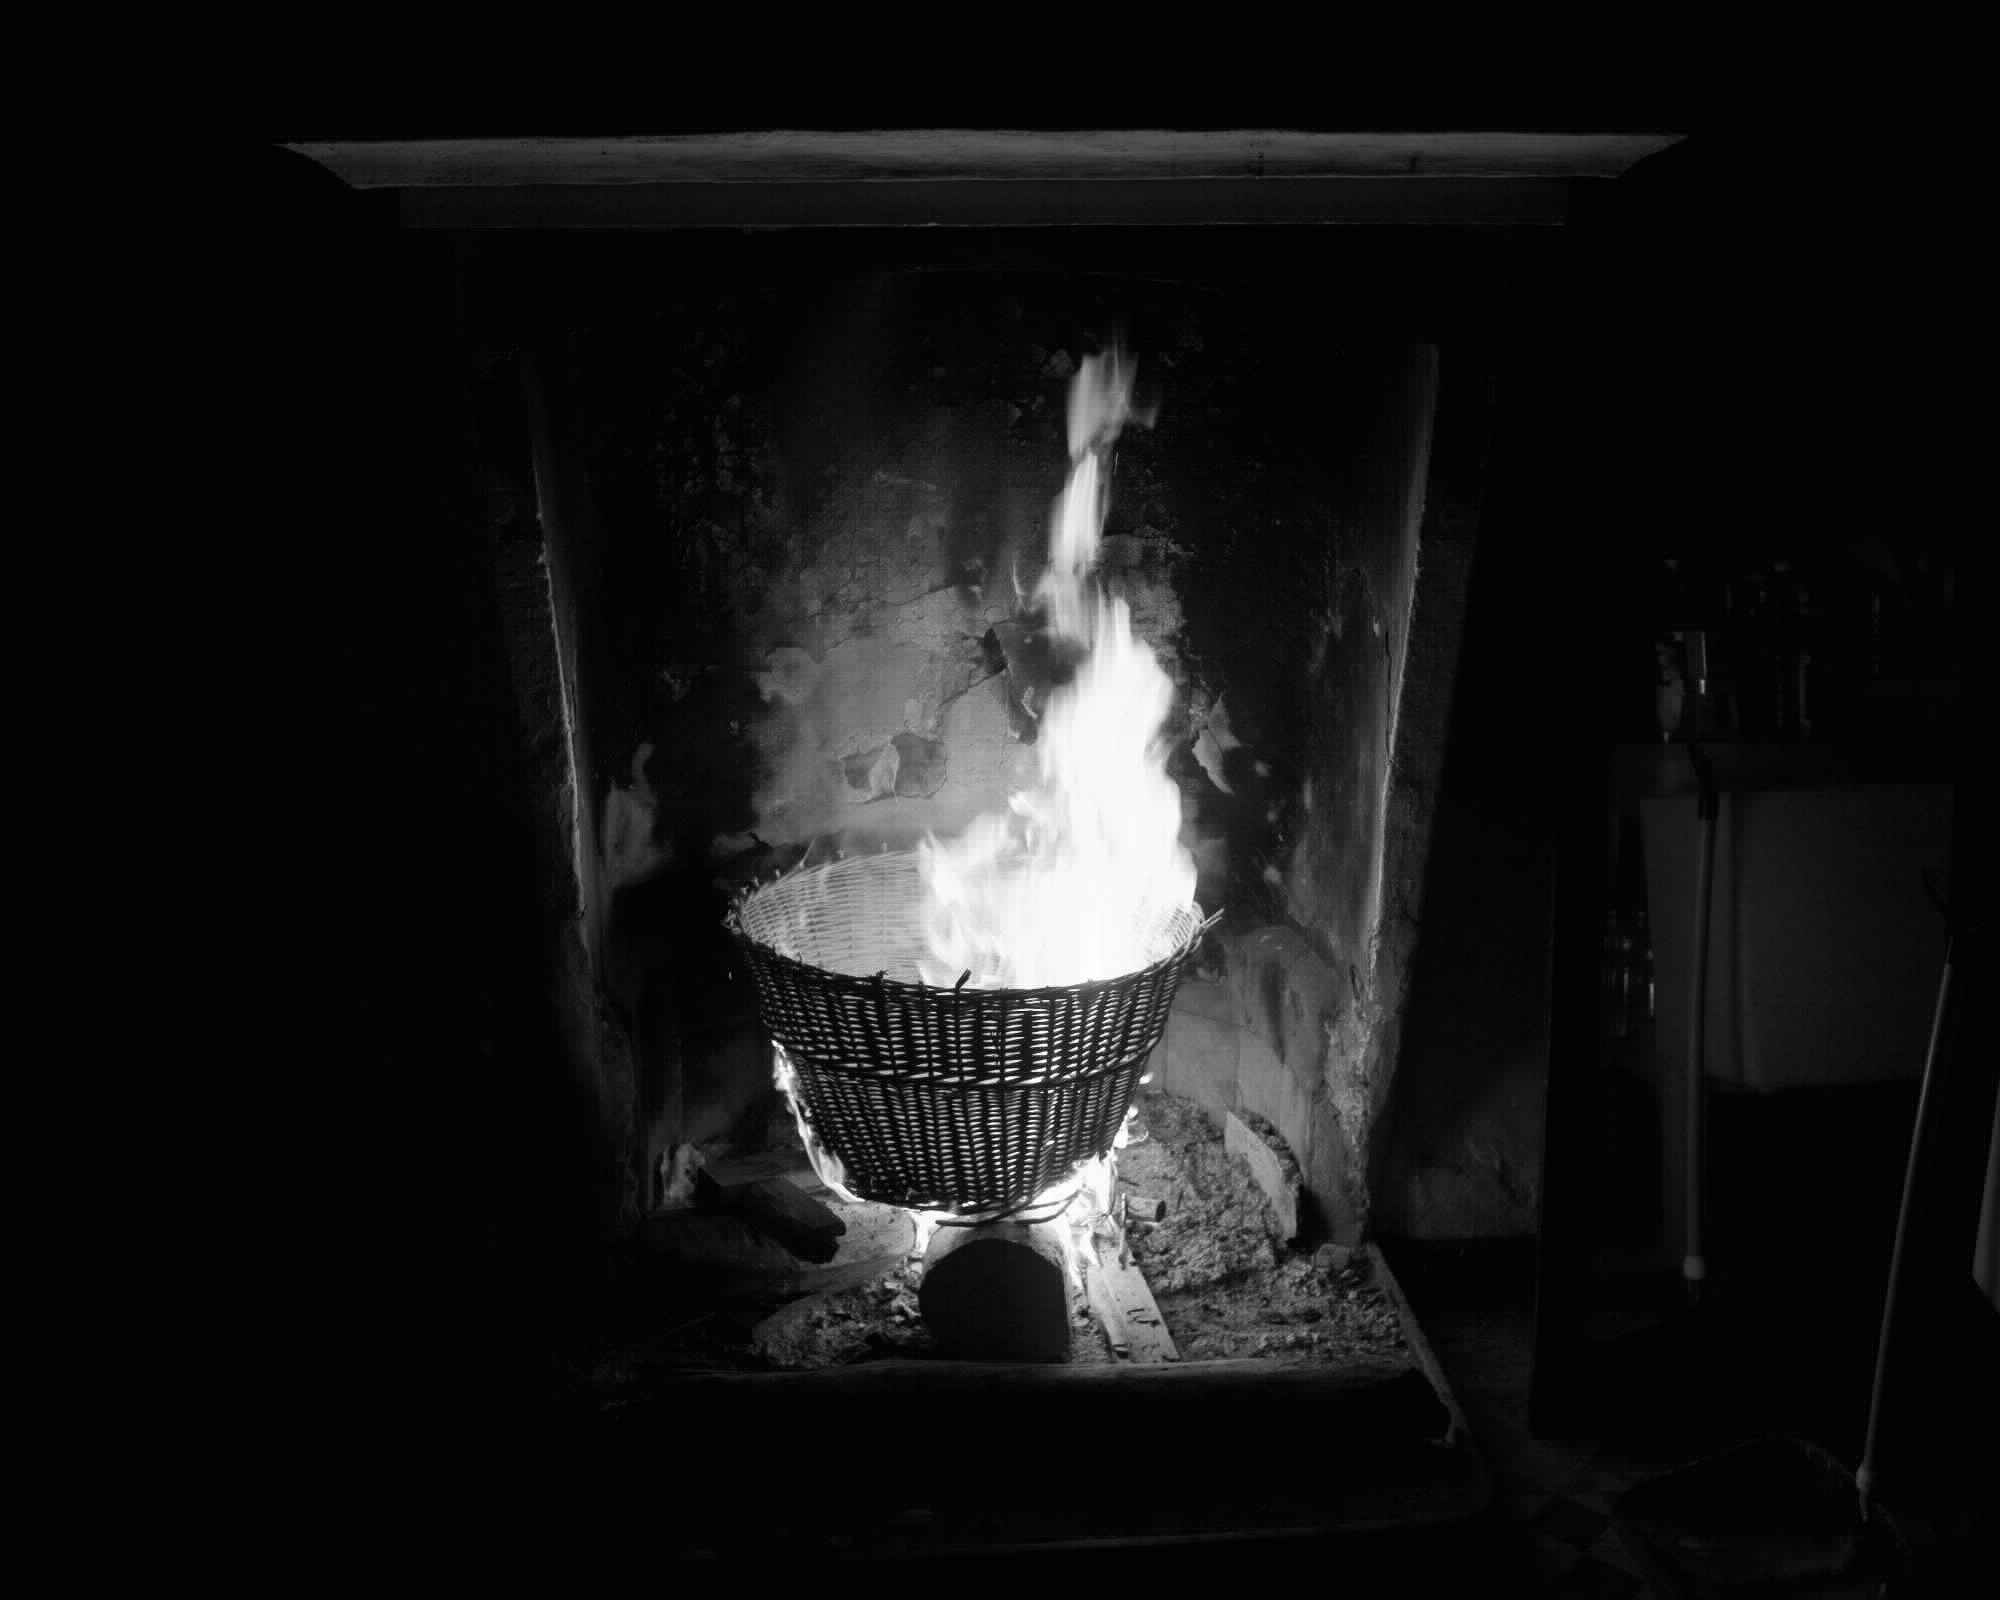 four photographs of burning objects in a fireplace